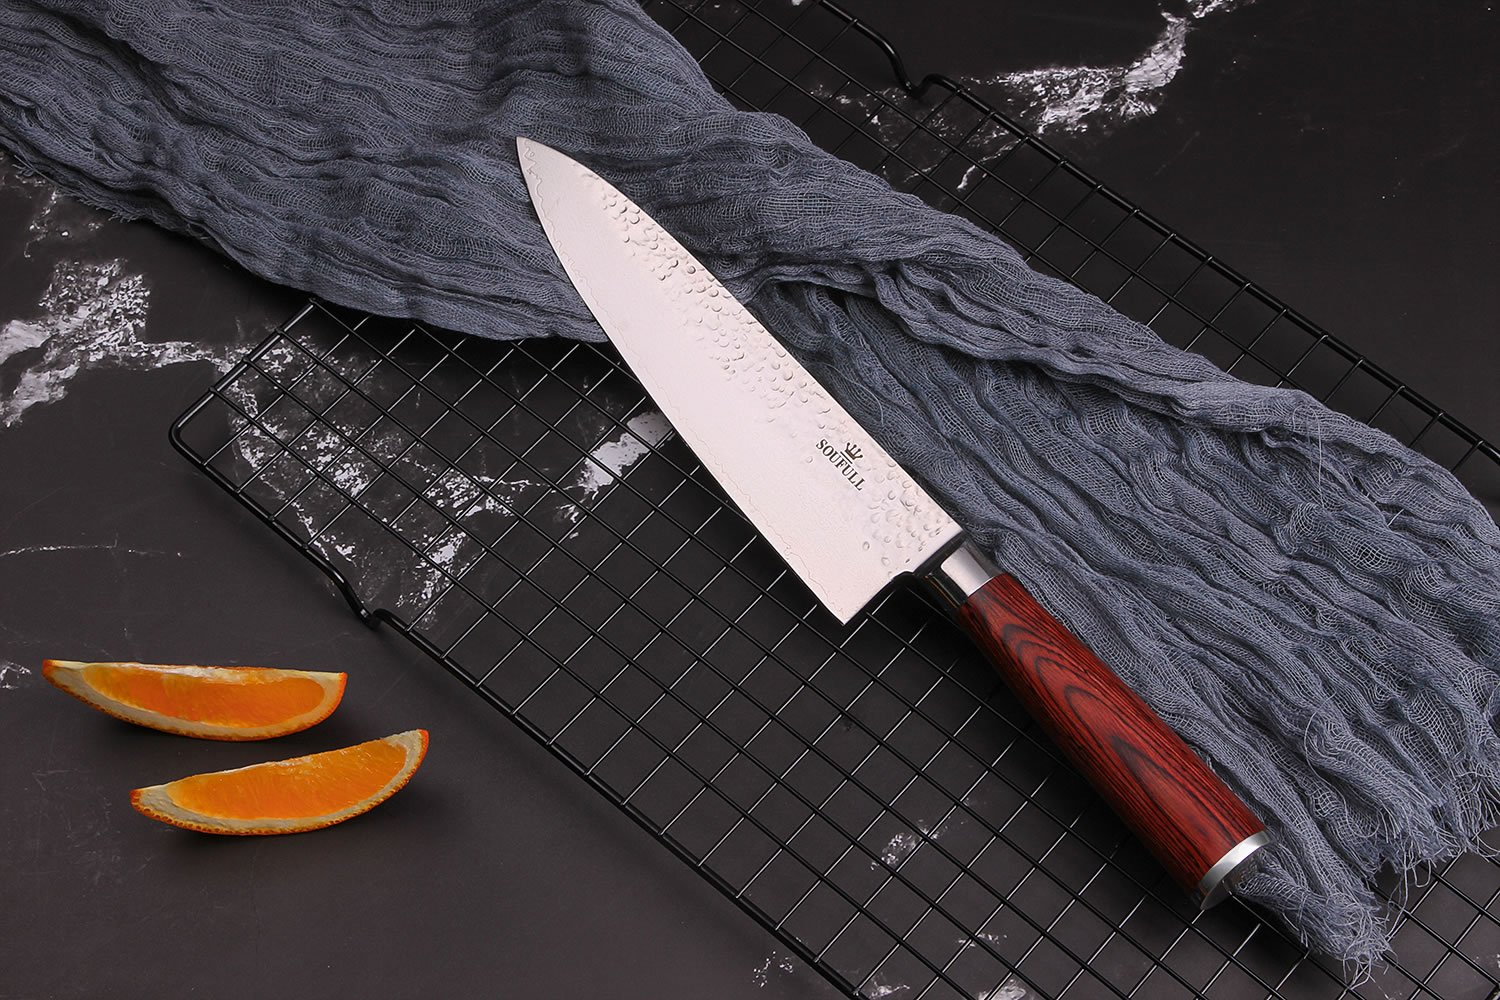 Damascus Chef Knife -Soufull 8 inch Knife Japanese VG10 Razor Sharp Well-Balanced - Stain & Corrosion Resistant Kitchen Knife - Professional Chefs Knives by Soufull (Image #2)